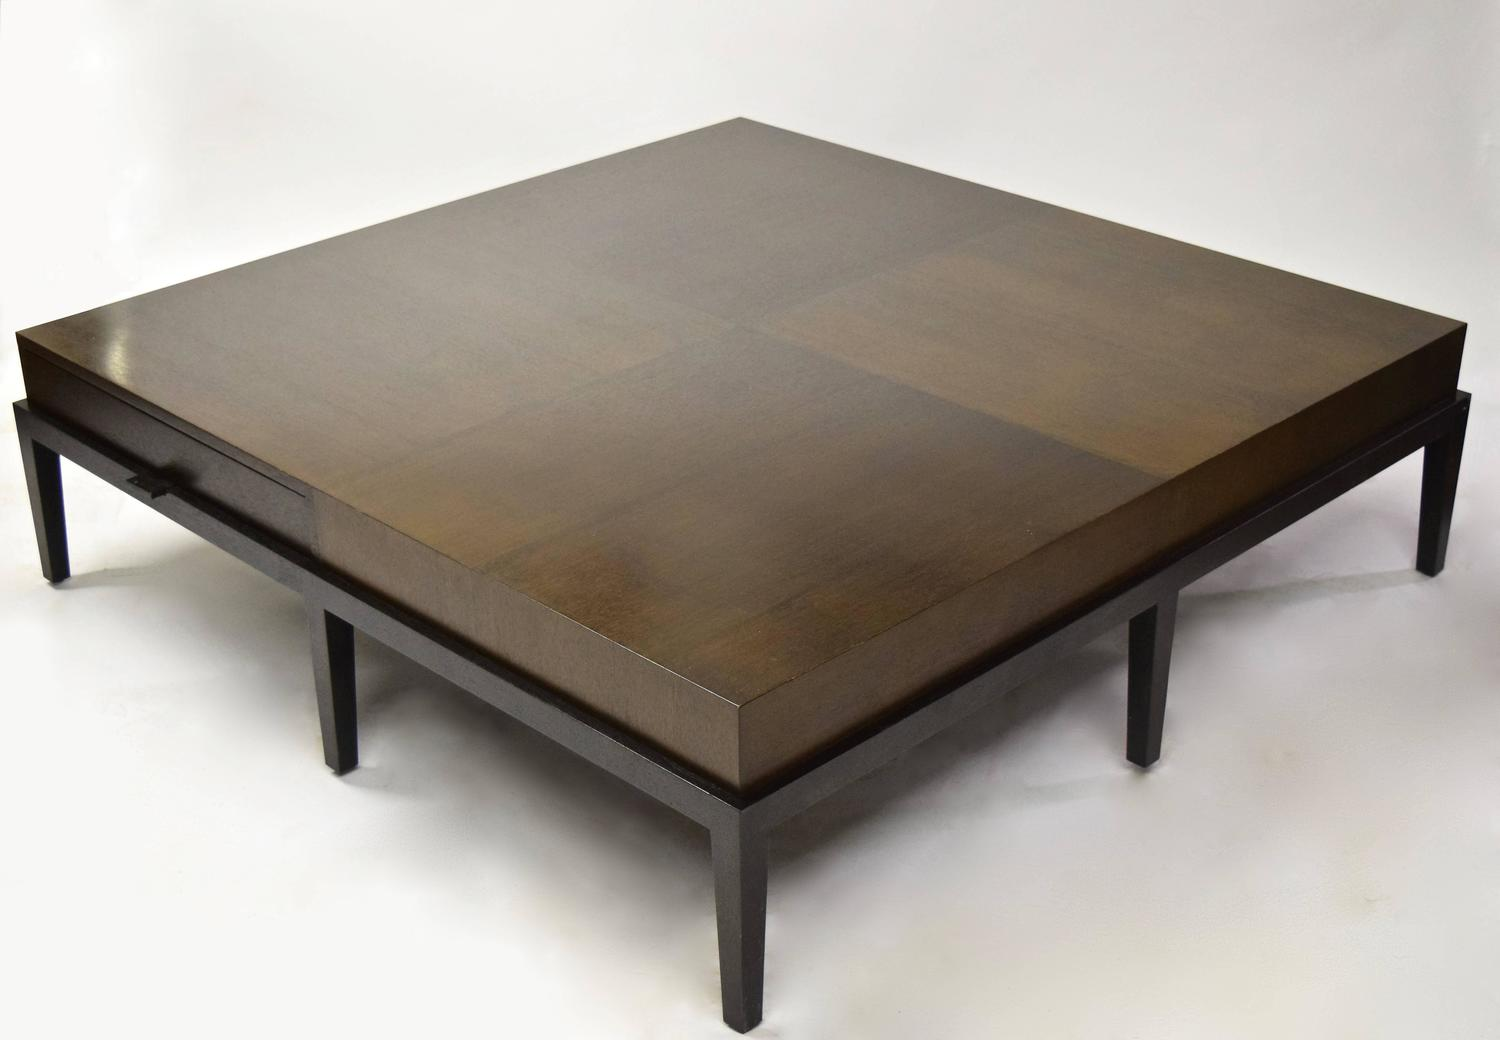 Coffee Table By Christian Liaigre For Holly Hunt Circa 1990 American For Sale At 1stdibs